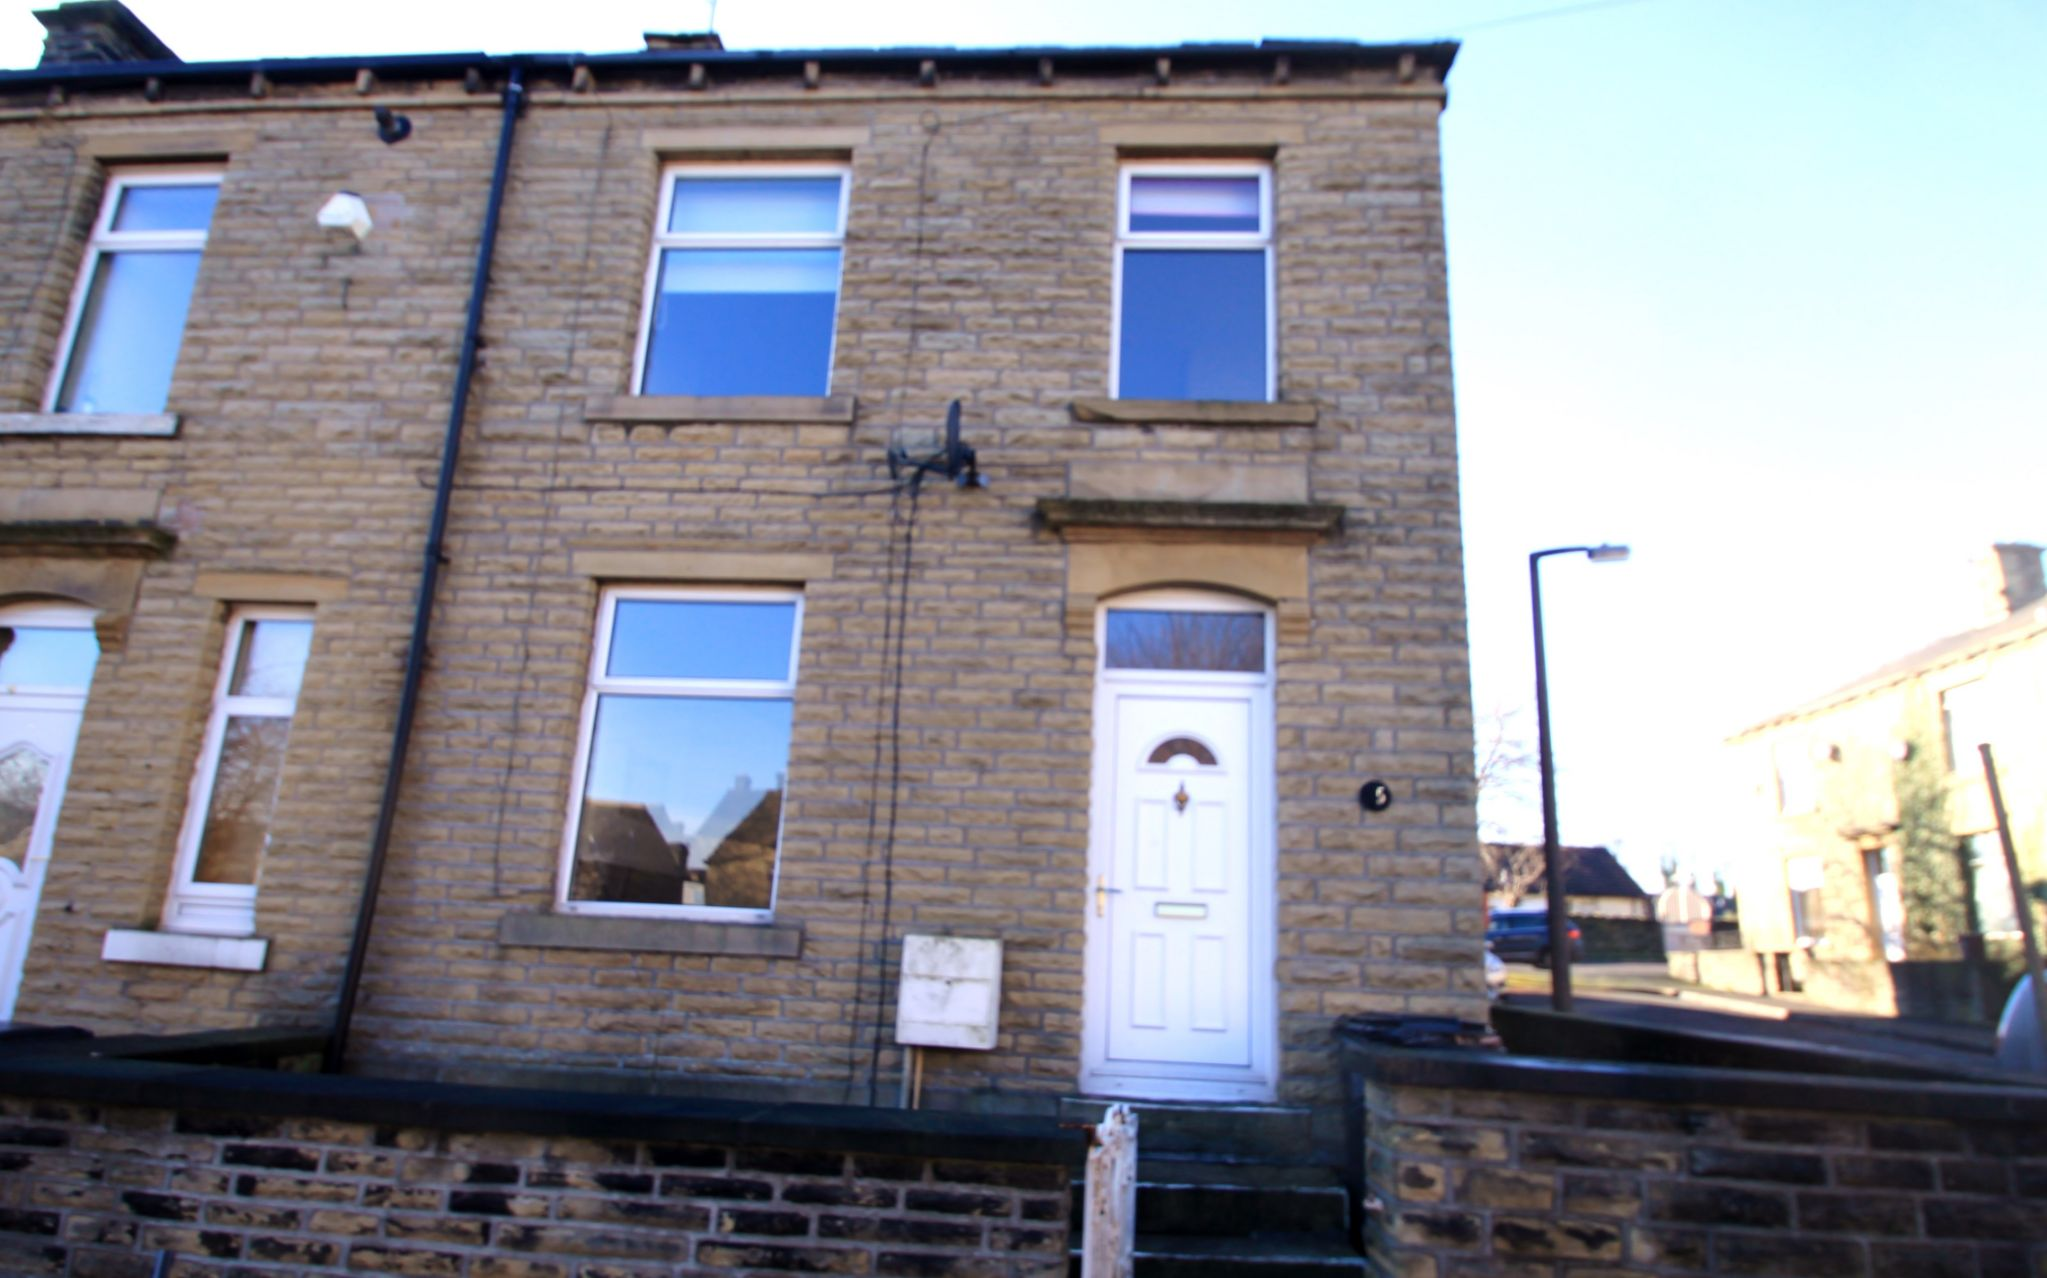 3 Bedroom End Terraced House To Rent - Photograph 1